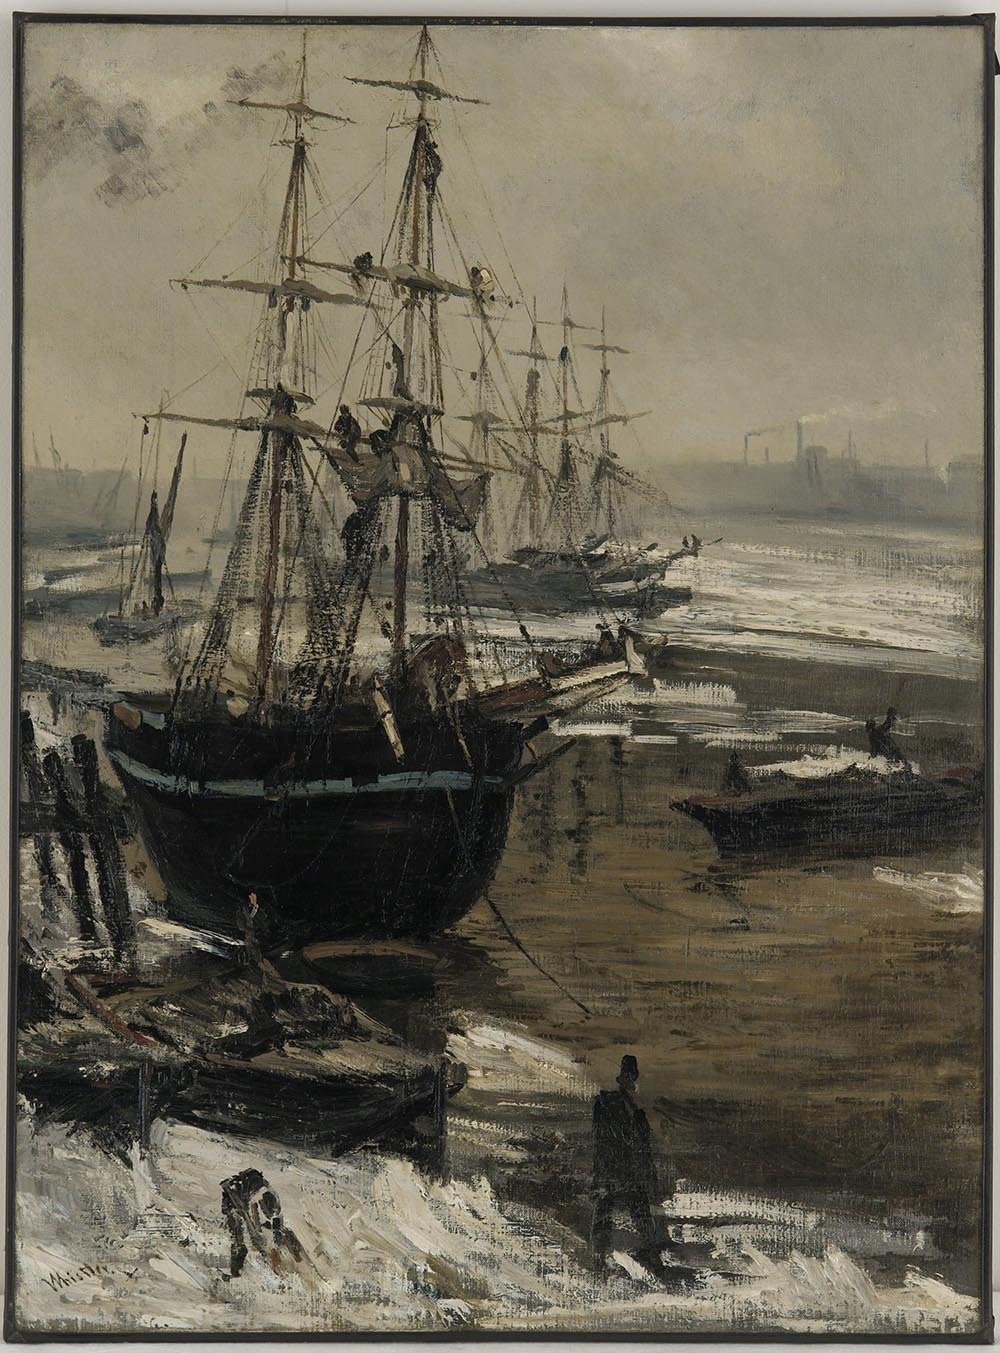 100% Hand Painted Oil on Canvas - Whistler - The Thames in Ice - 20x24 Inch